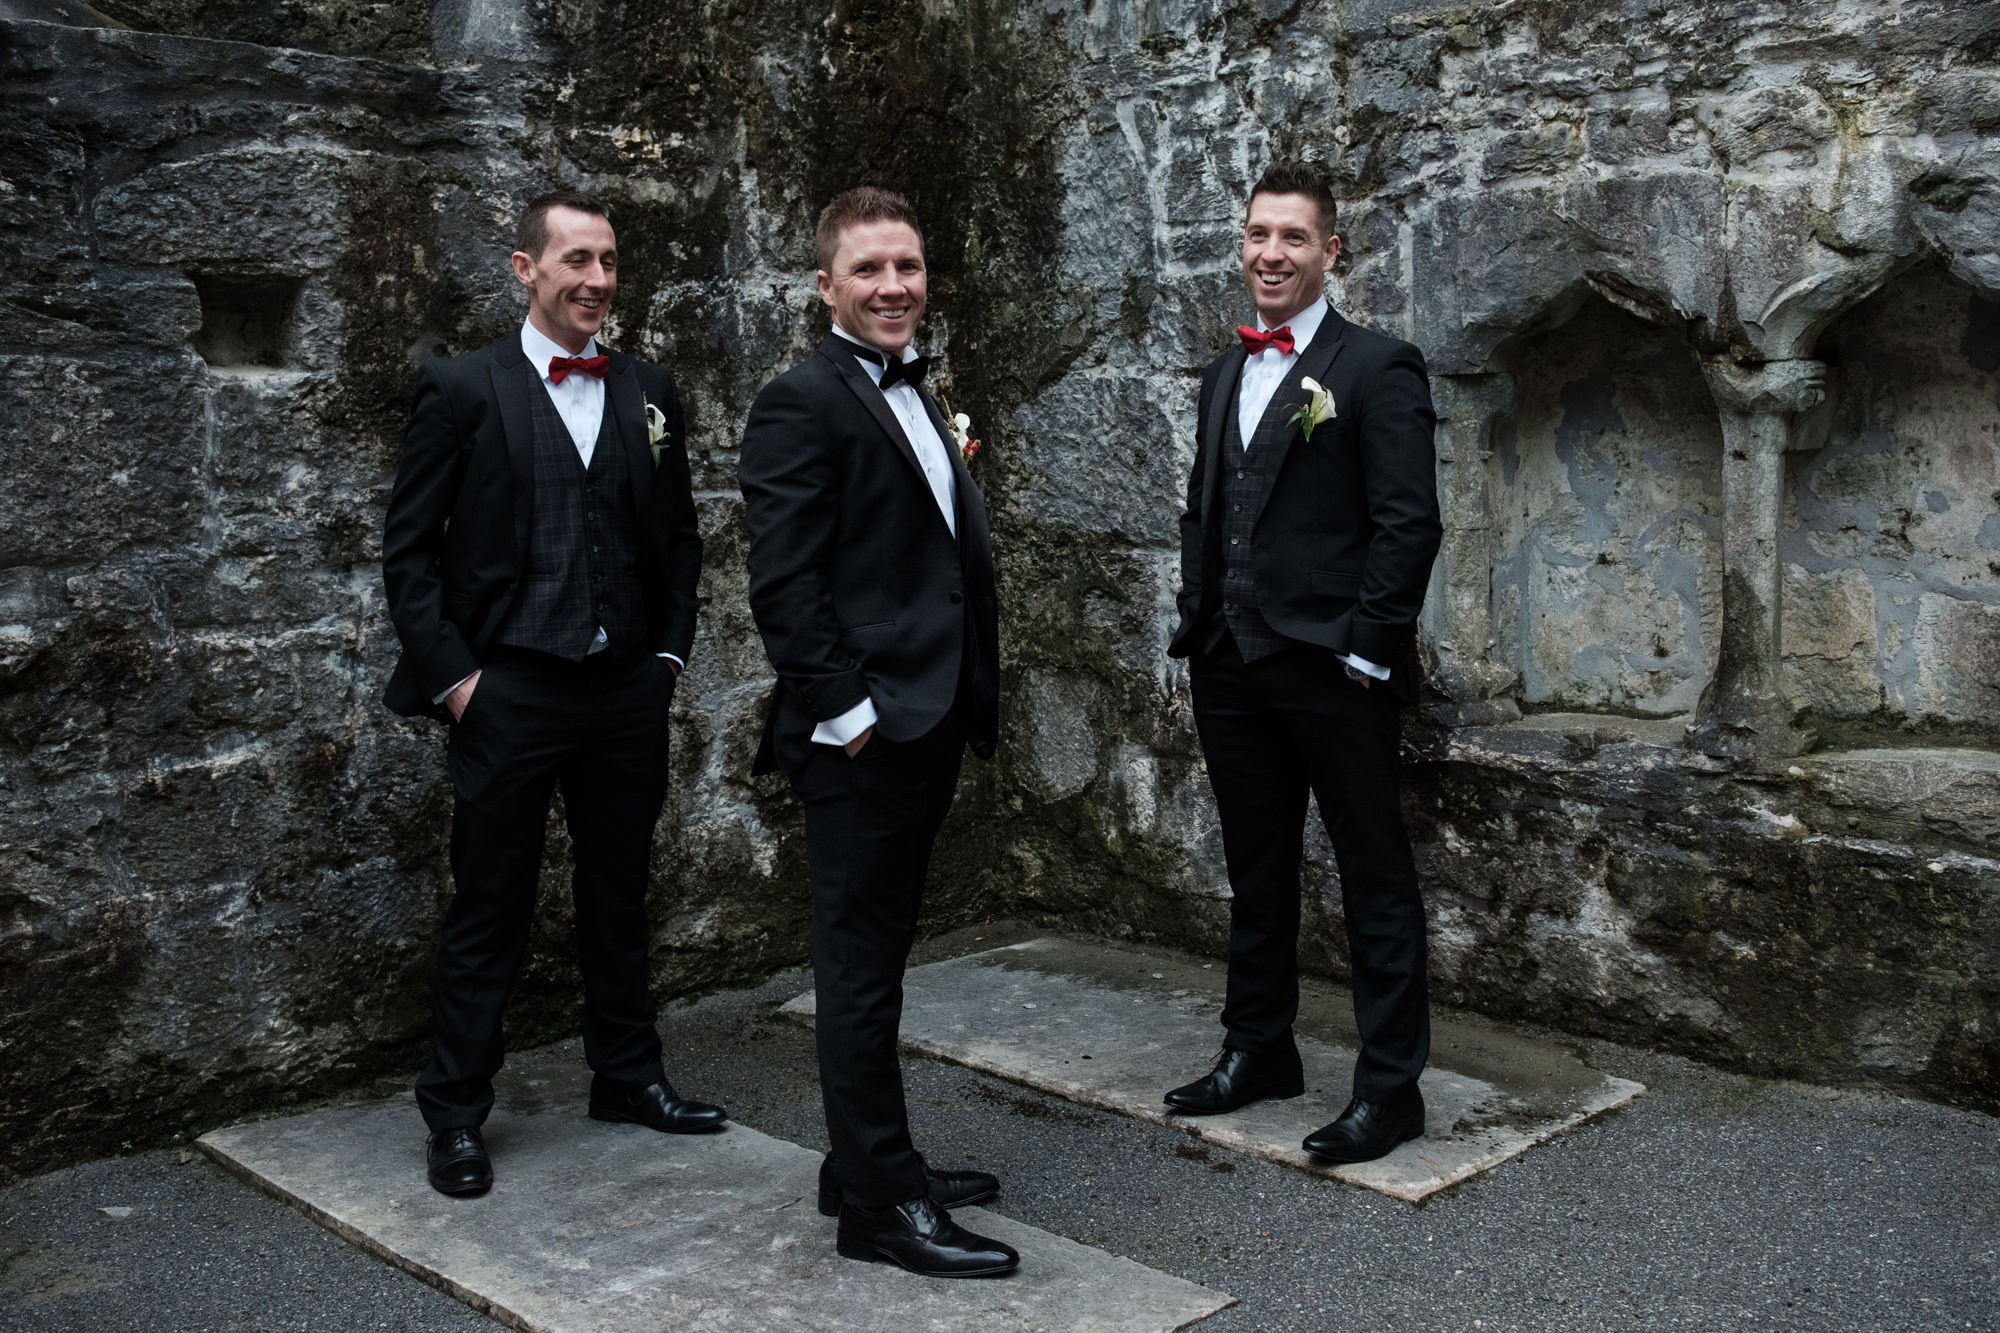 muckross-abbey-wedding